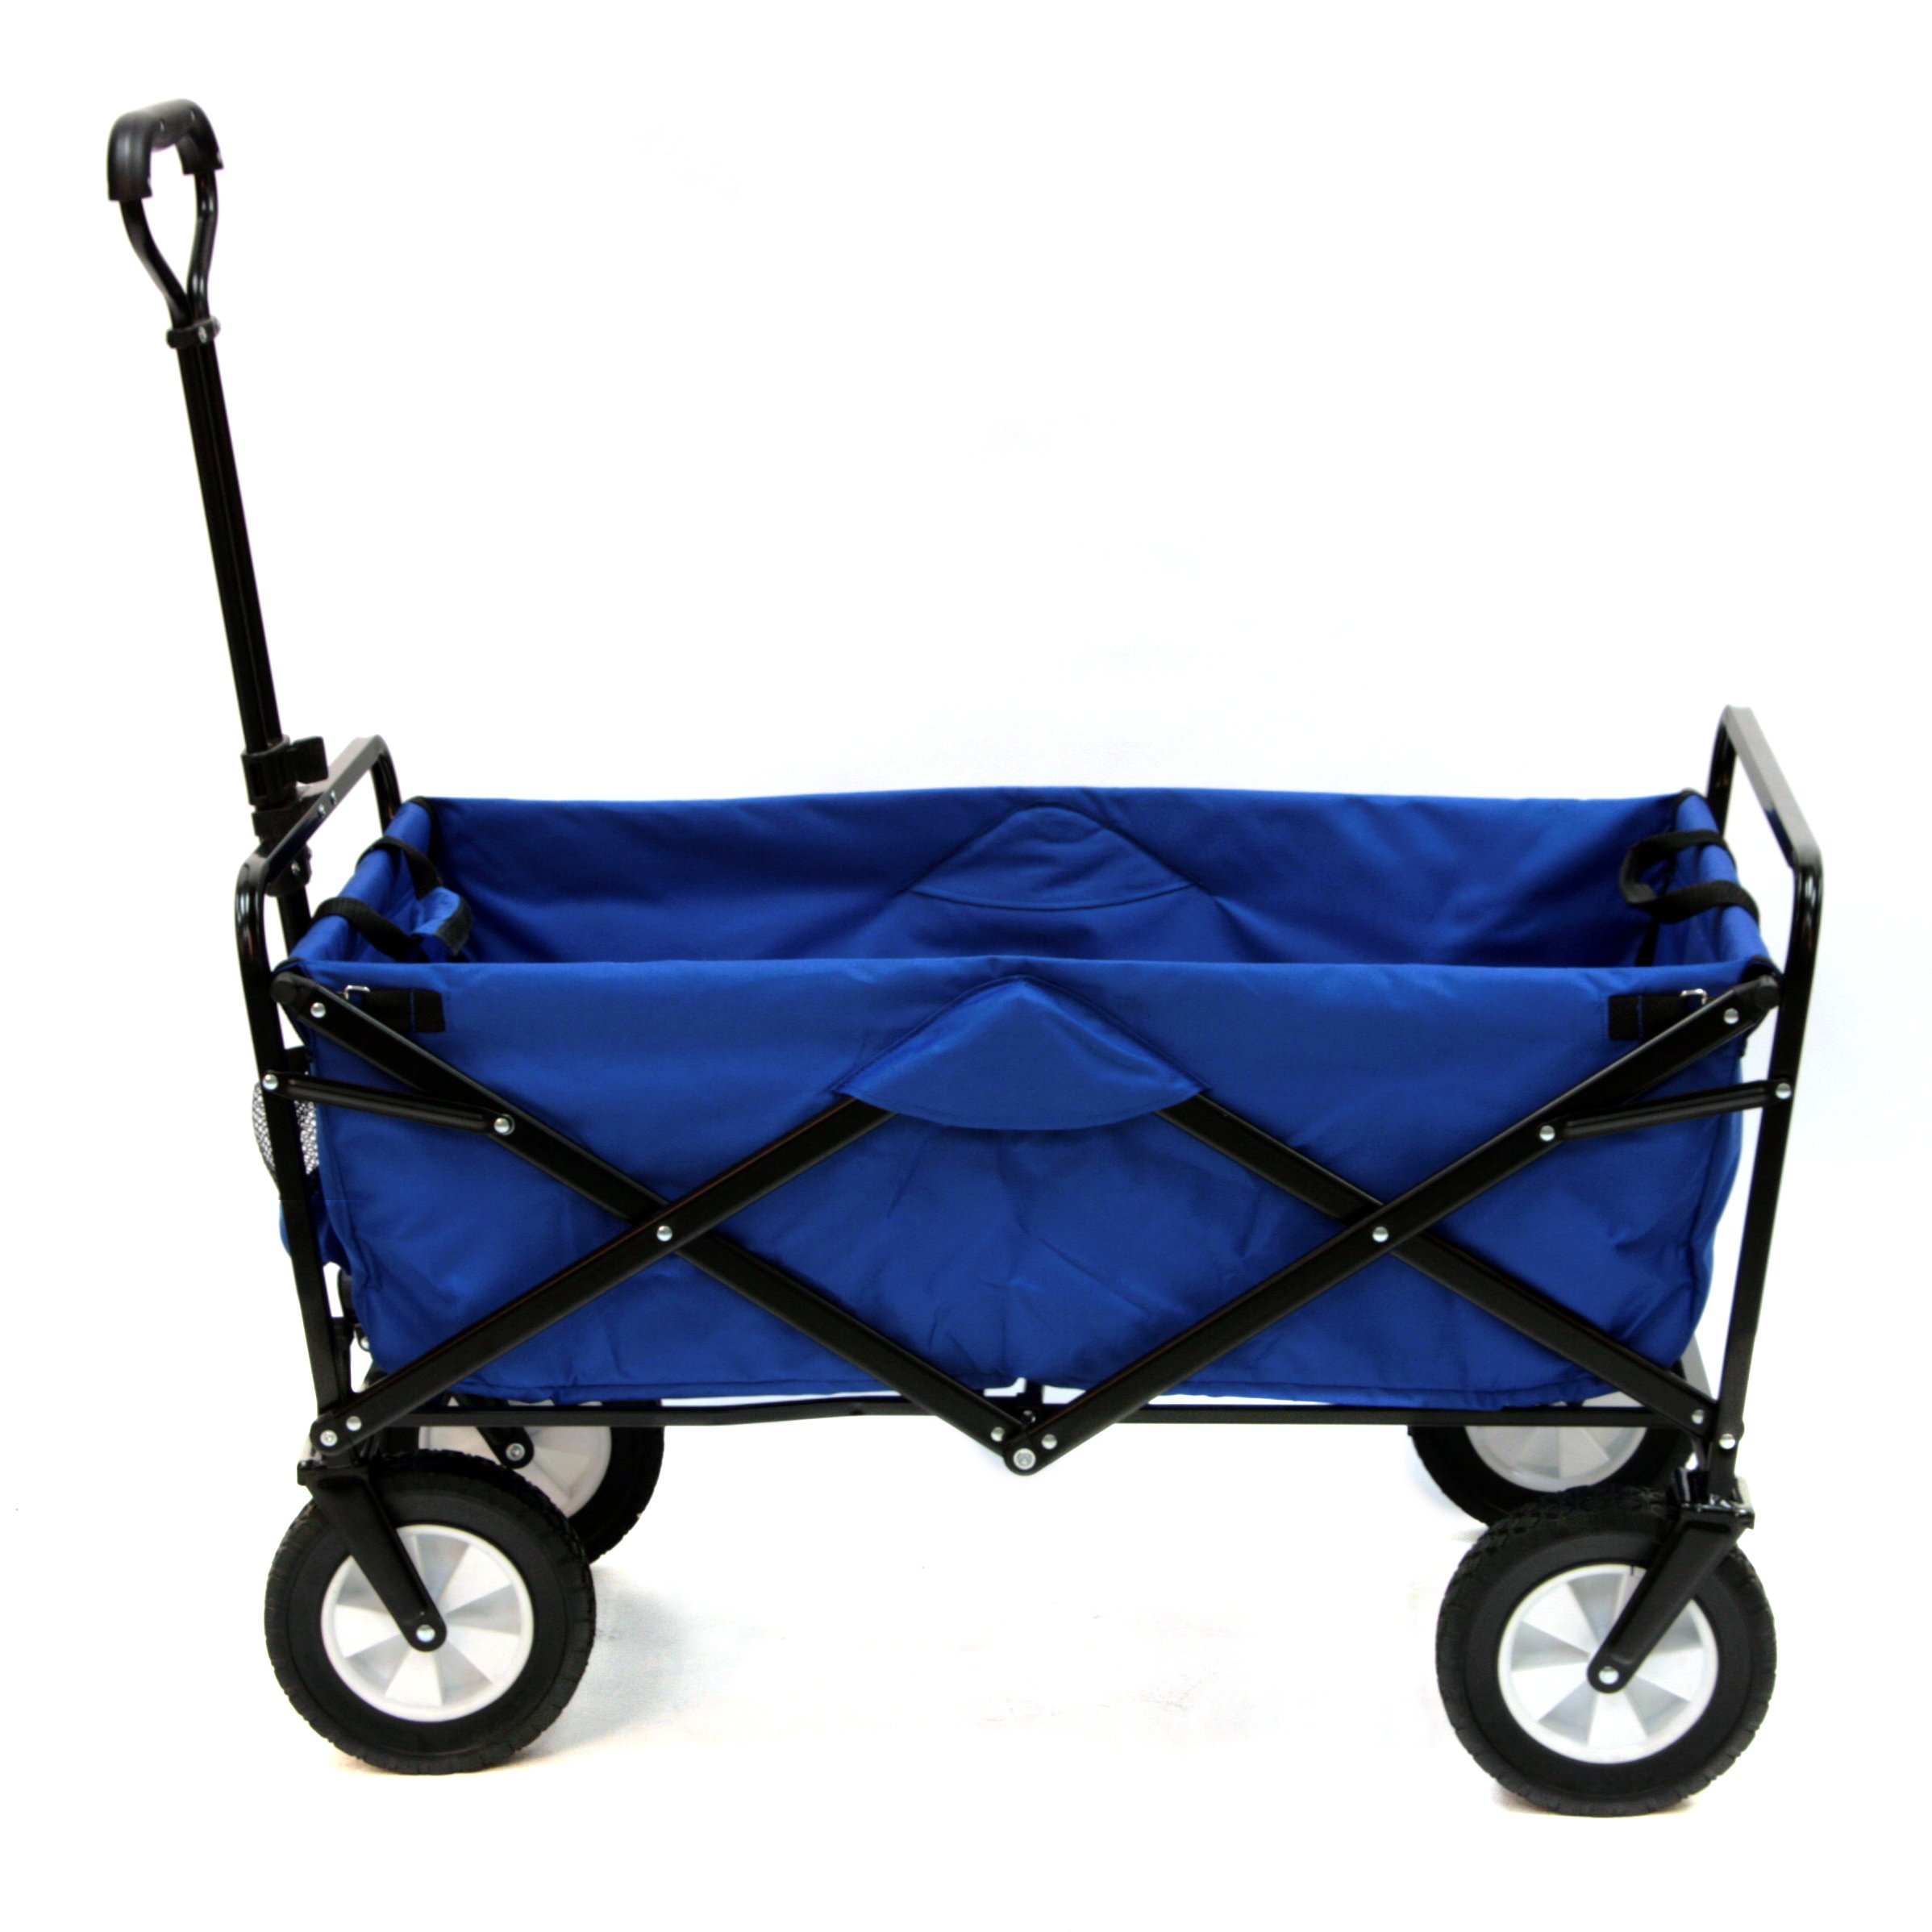 Mac Sports Collapsible Folding Outdoor Utility Wagon, Blue by Mac Sports